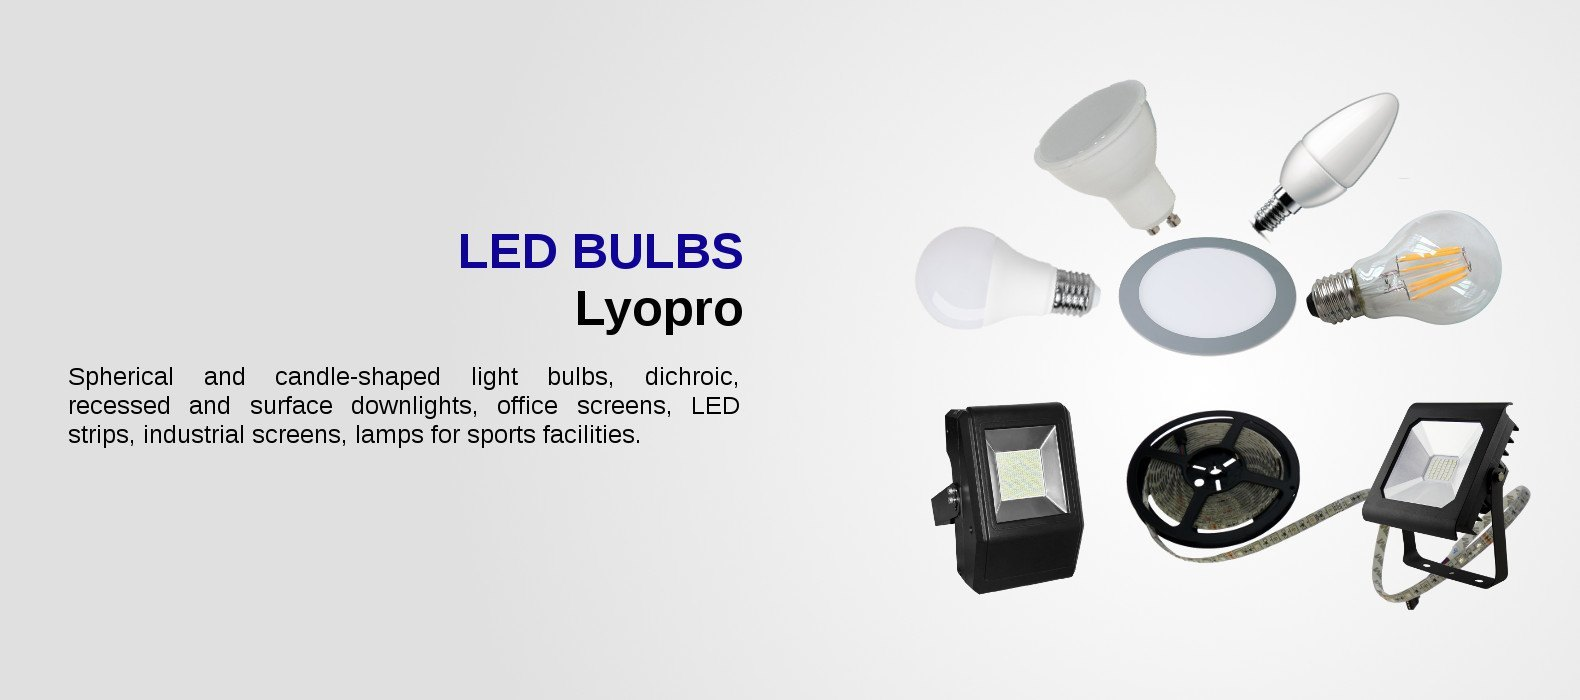 sl-bulb-spherical-candle-shaped-dichroic-downlights-tubo-lamps-industrial-sports